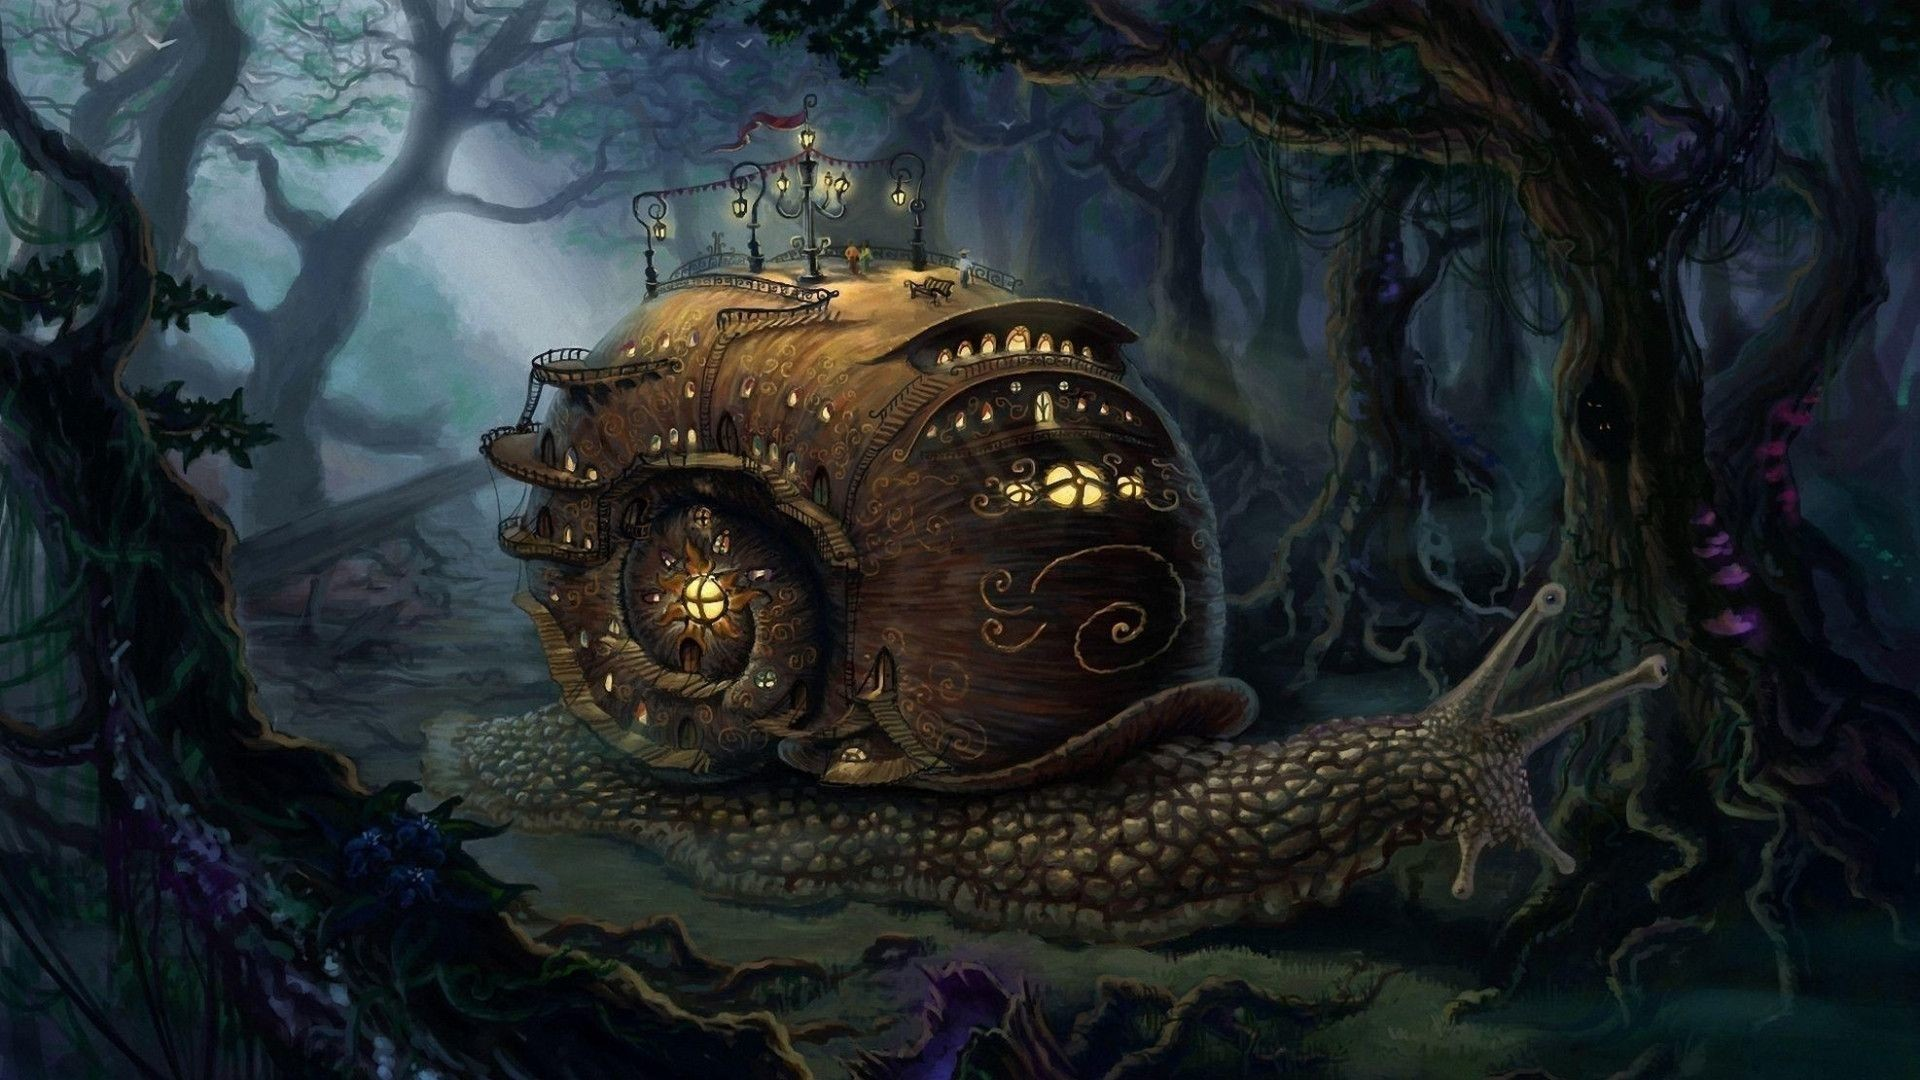 1920x1080 - Steampunk Wallpapers 21